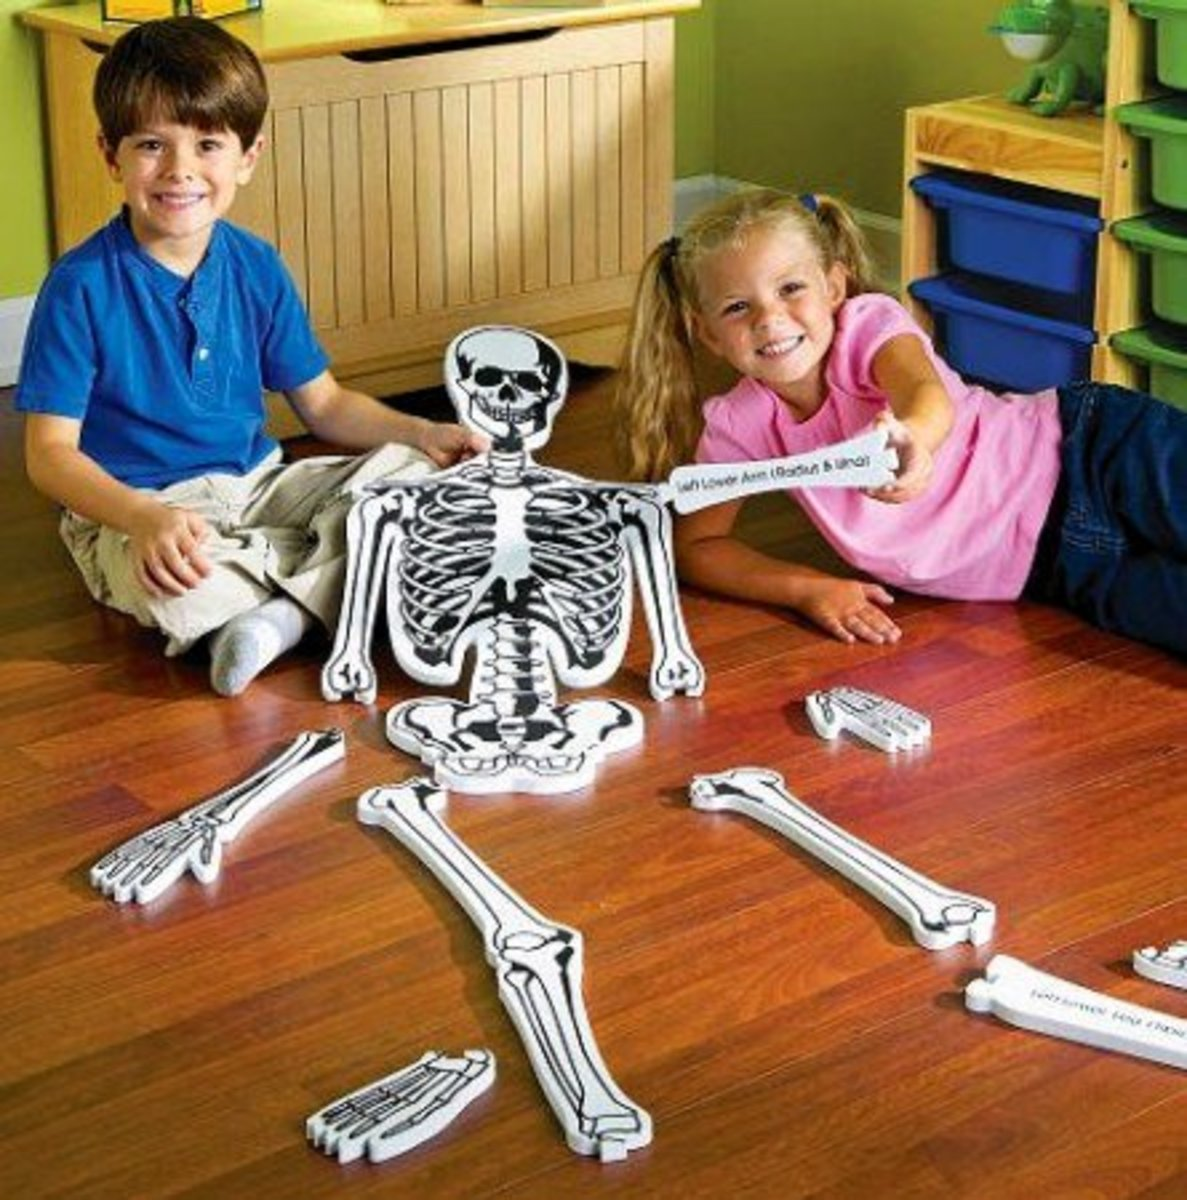 Playing with the Foam Skeleton Puzzle